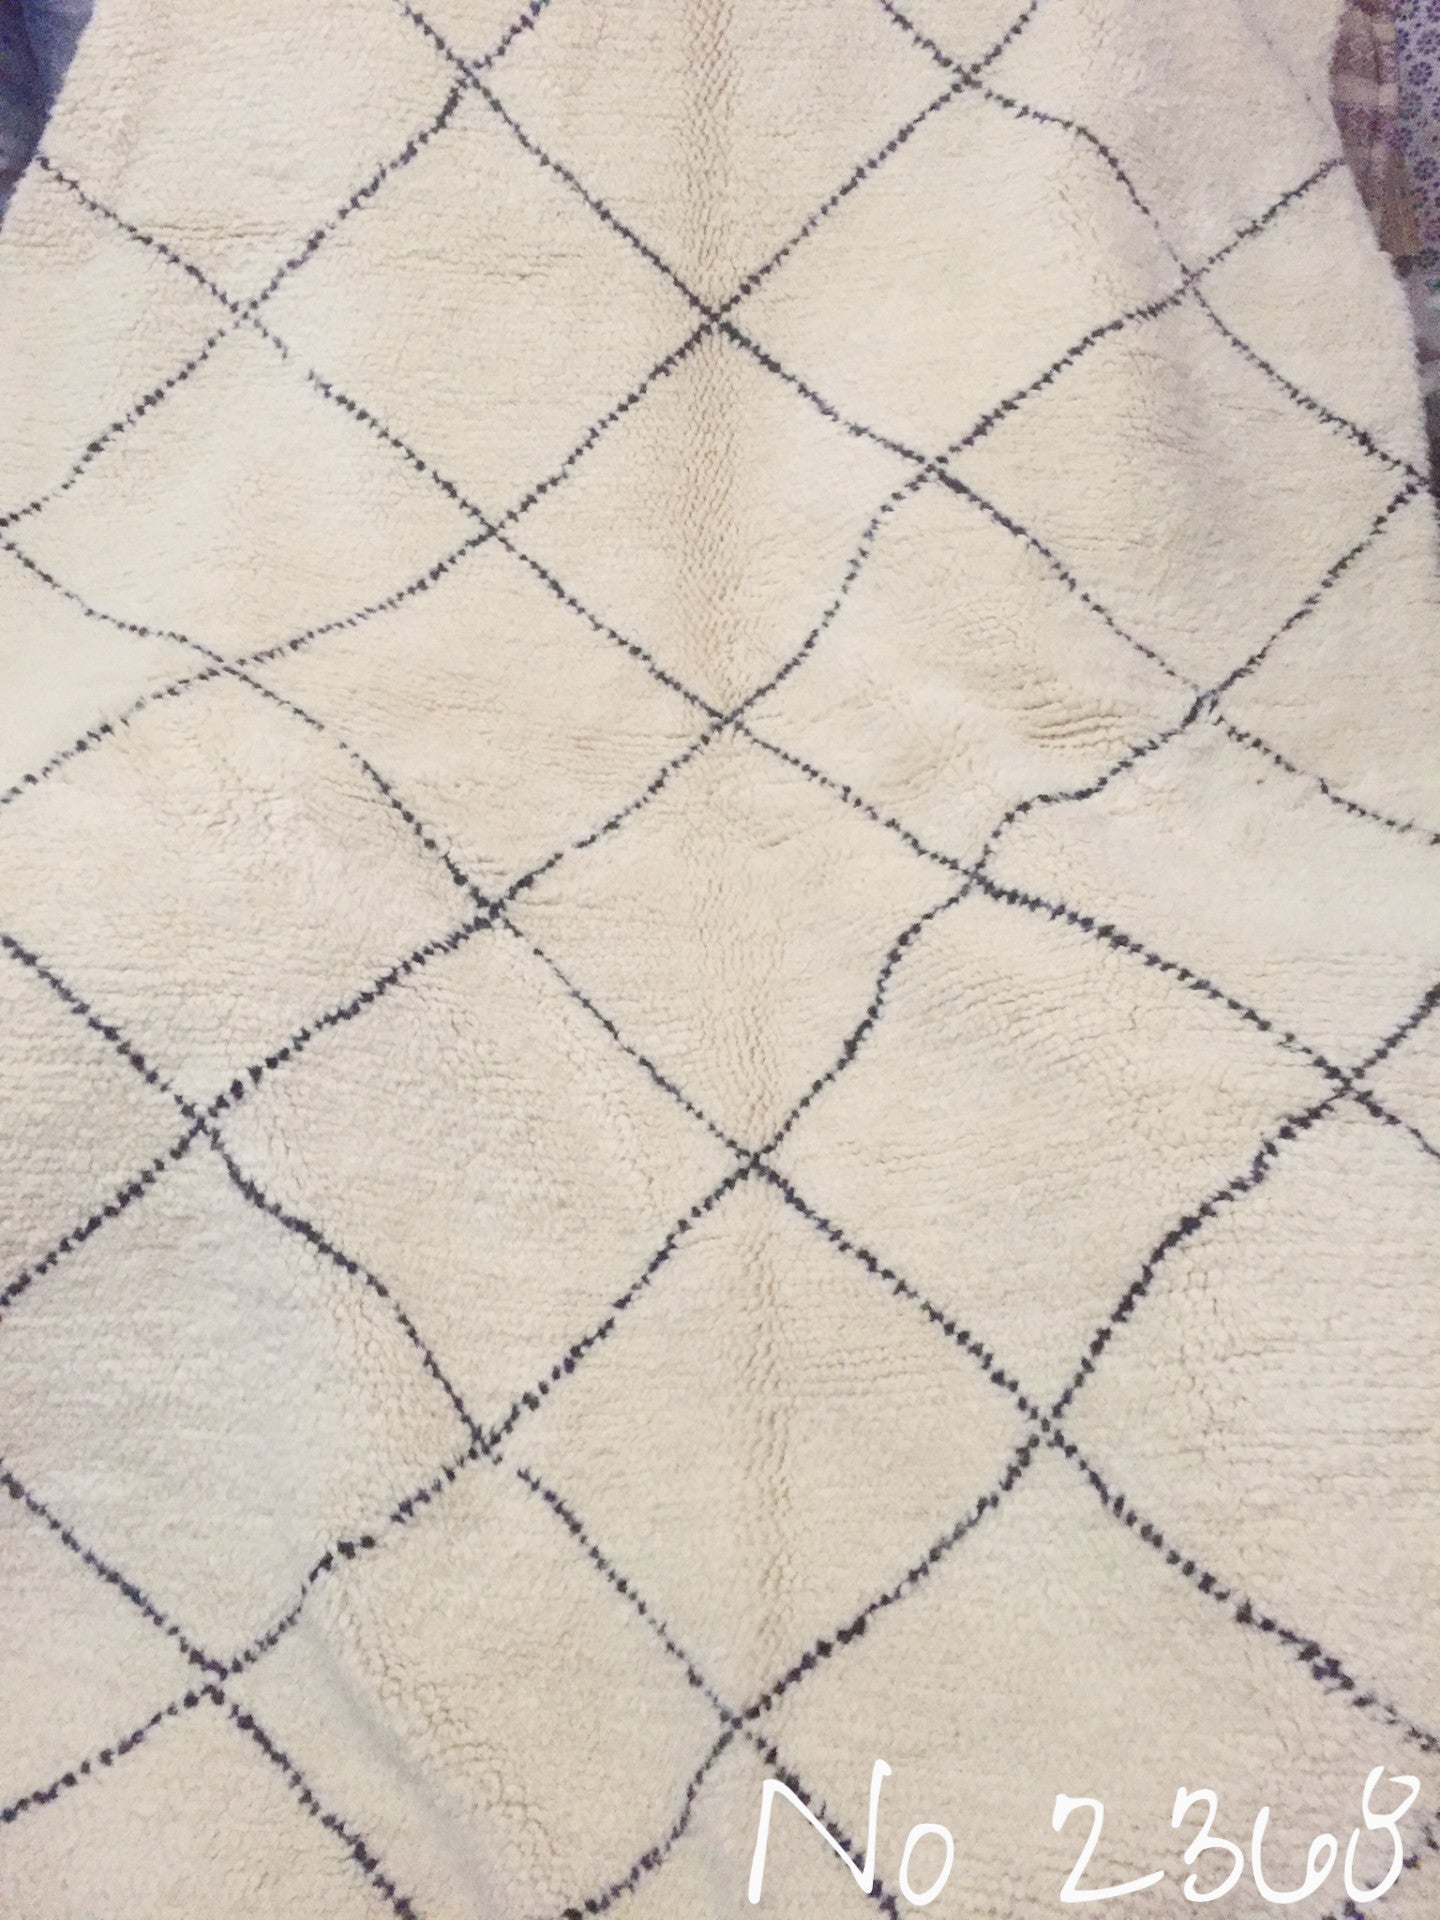 Beni Ourain Tribal Carpet - 230 x 162 cm - Casablanca - Natural Wool - 2368